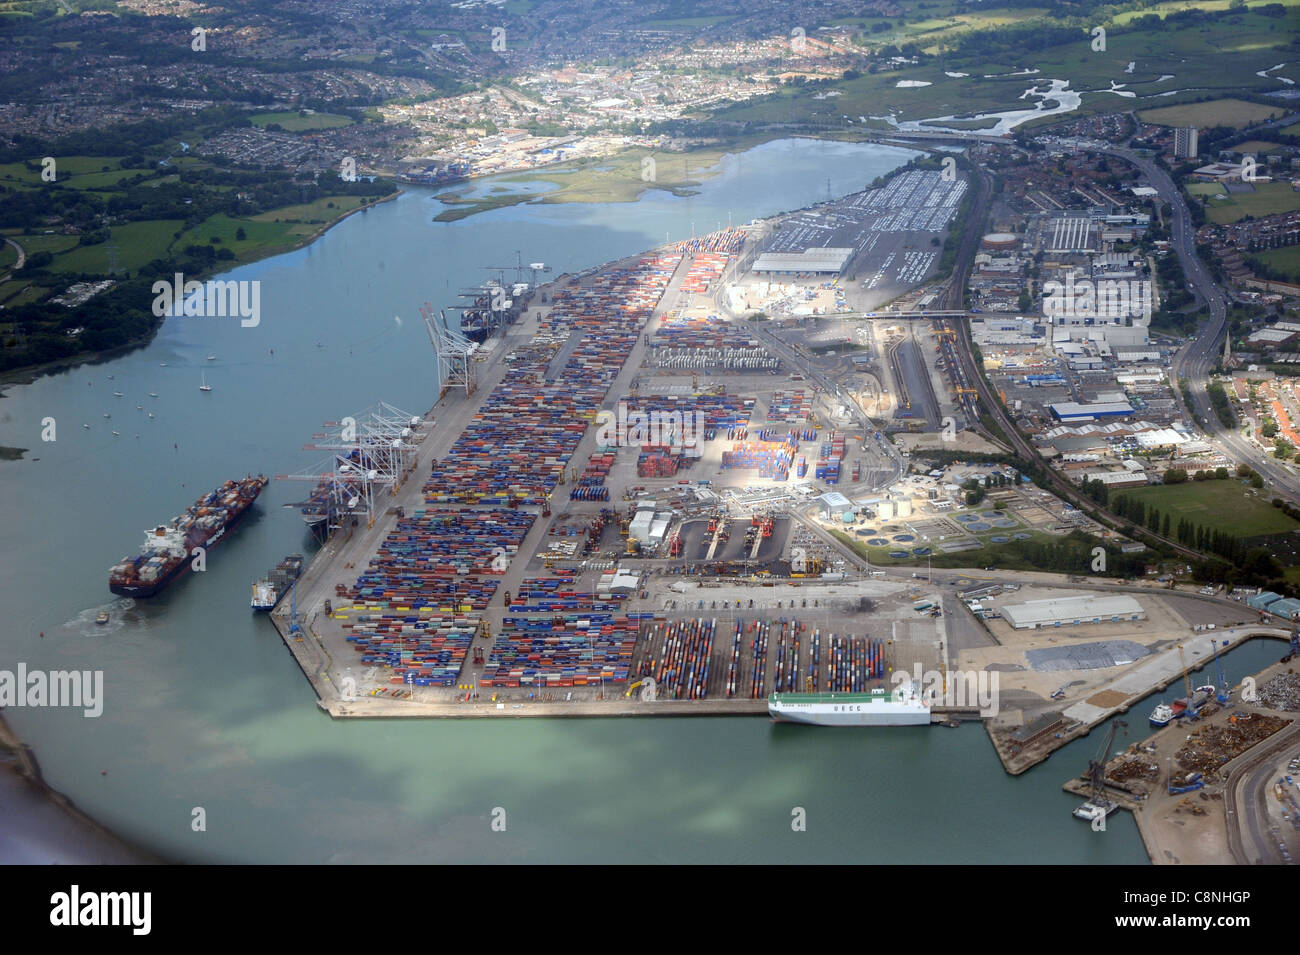 Aerial view of the Southampton international container port. - Stock Image